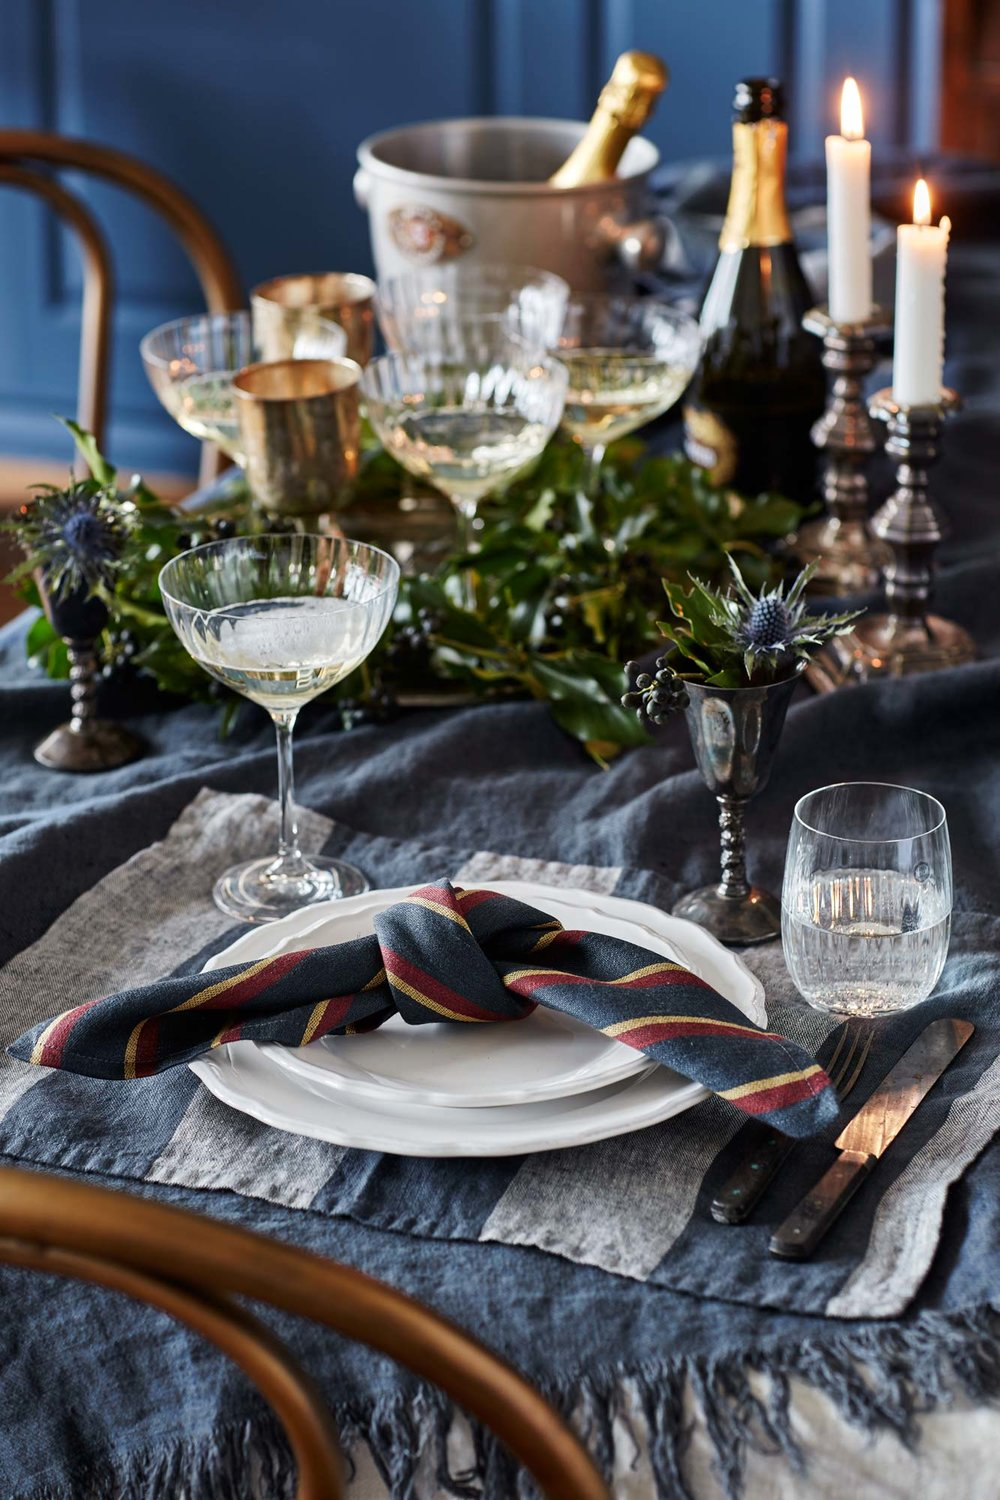 Table setting for fall in denim blue hues.